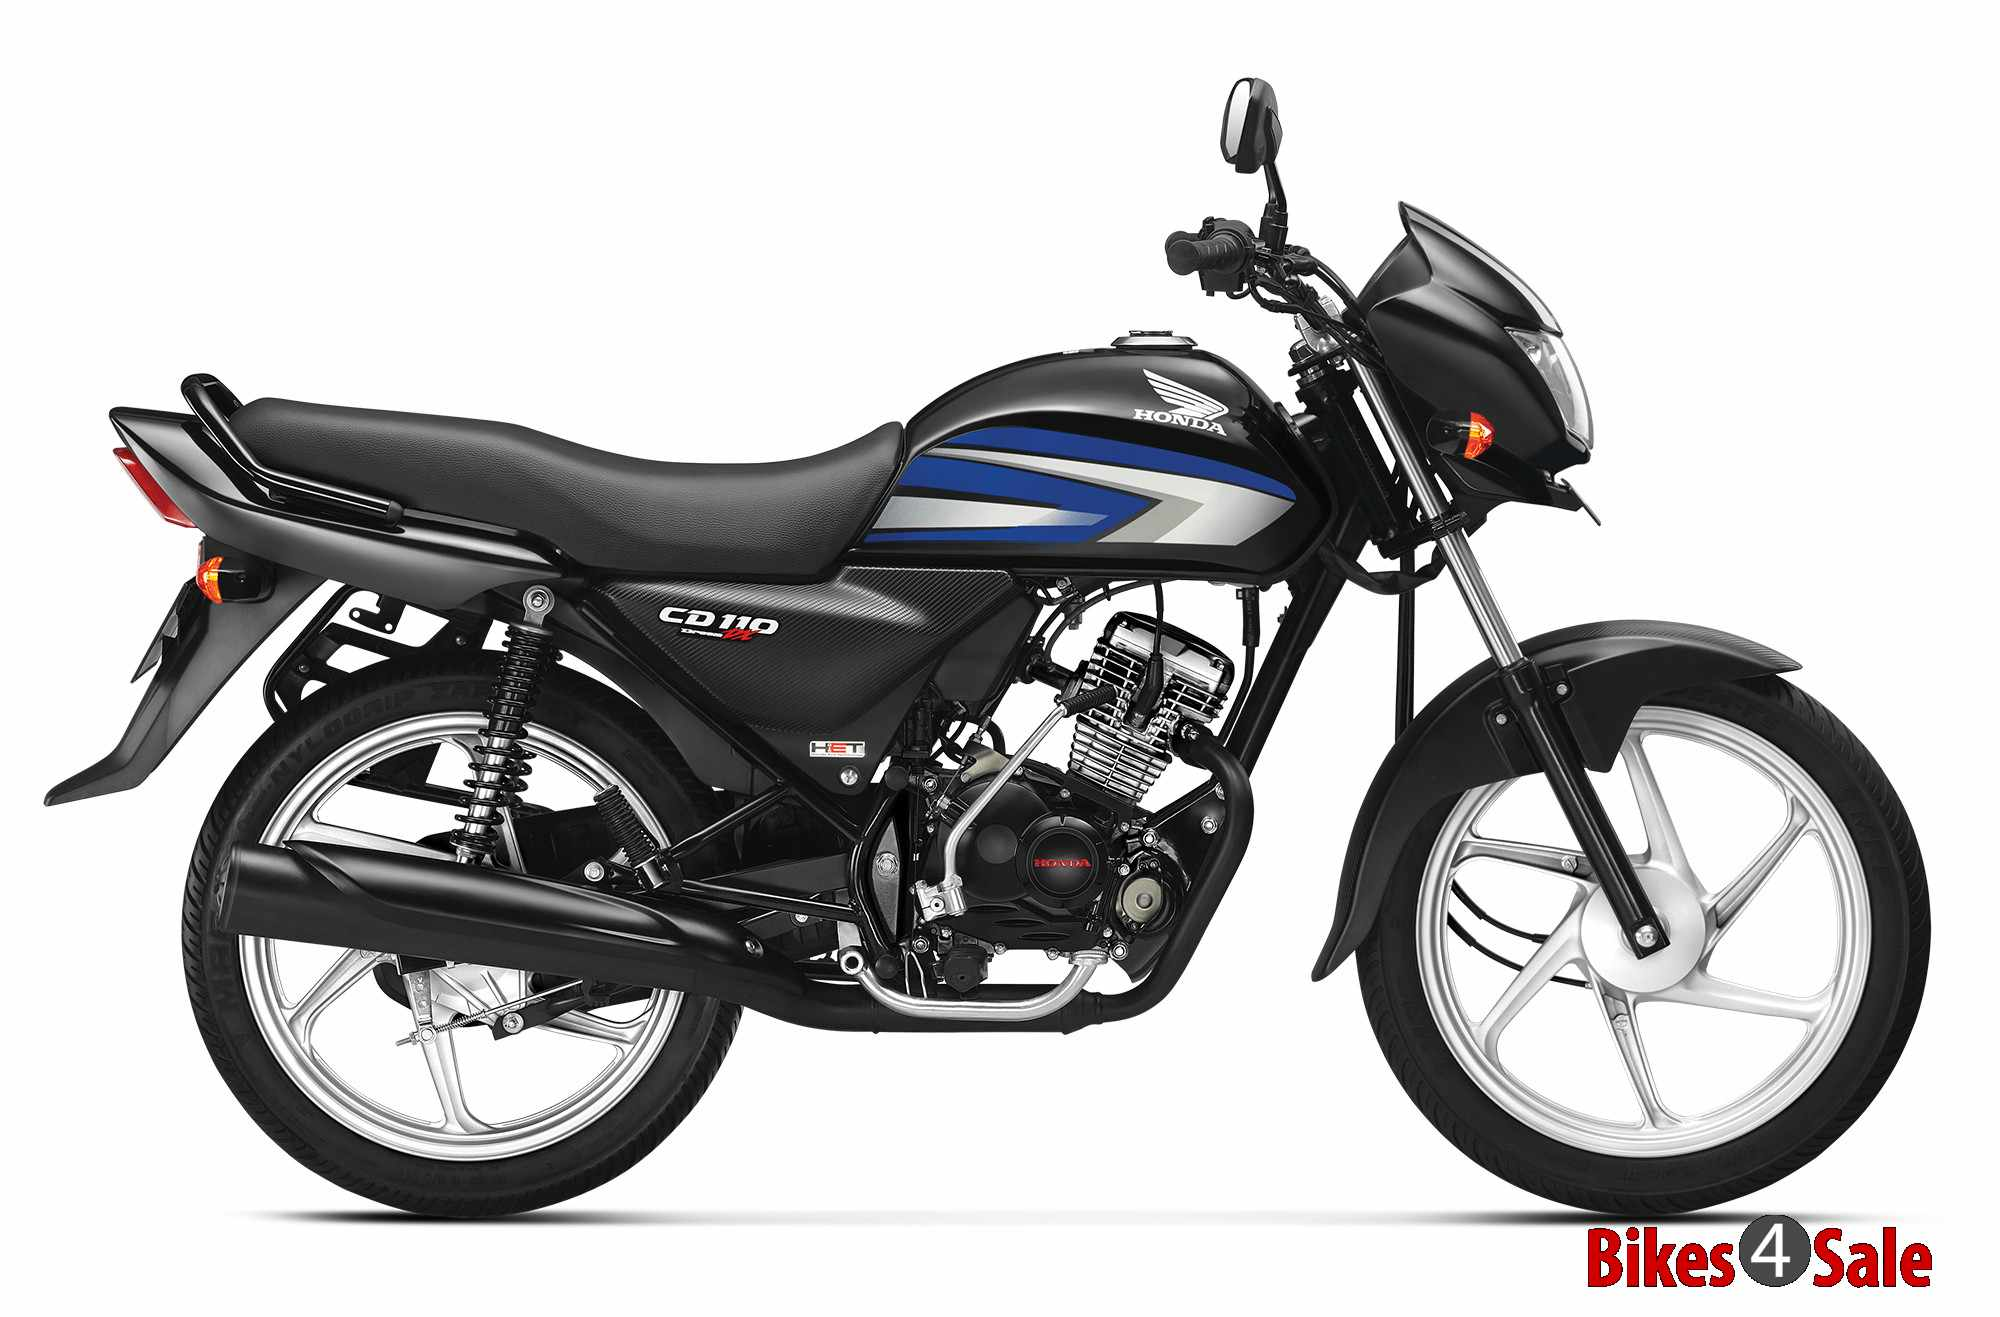 Used Honda Motorcycles >> Honda CD 110 Dream DX Motorcycle Picture Gallery. Blue color - Bikes4Sale